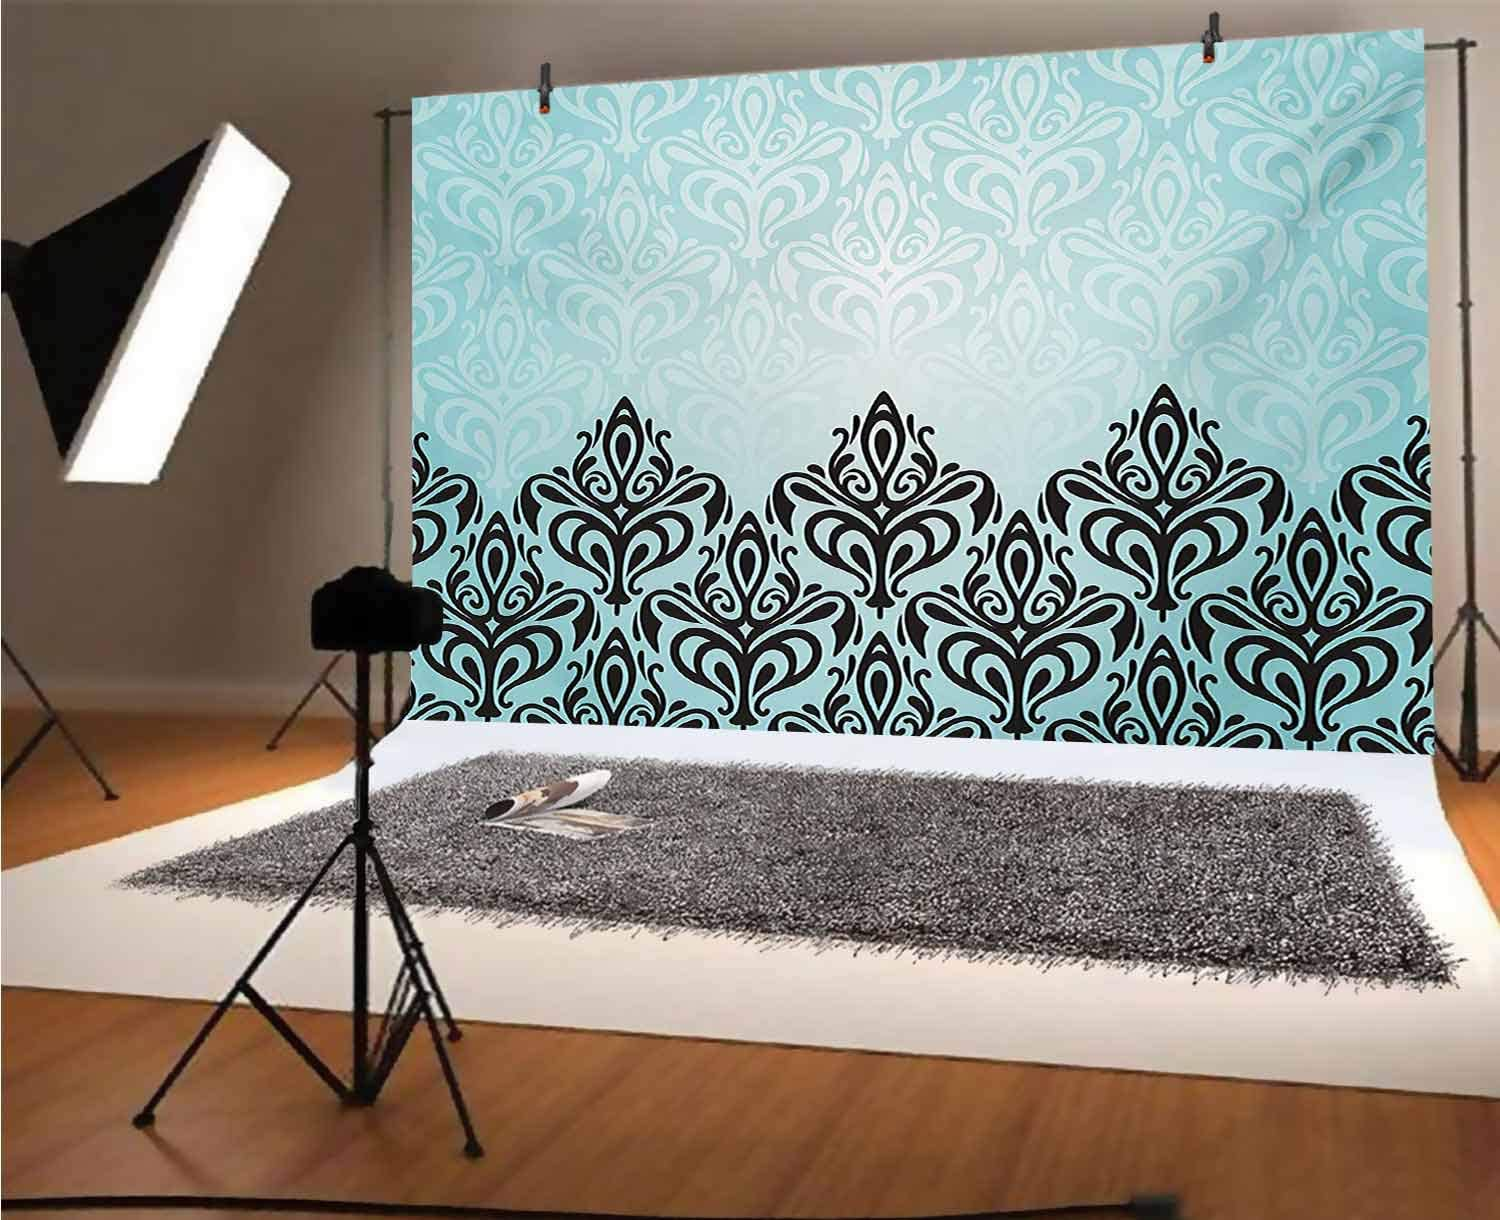 Cat 10x8 FT Vinyl Photography Background Backdrops,Patchwork Inspired Pattern Adorable Kitty Faces Silly Expressions Footprints Stripes Background for Photo Backdrop Studio Props Photo Backdrop Wall